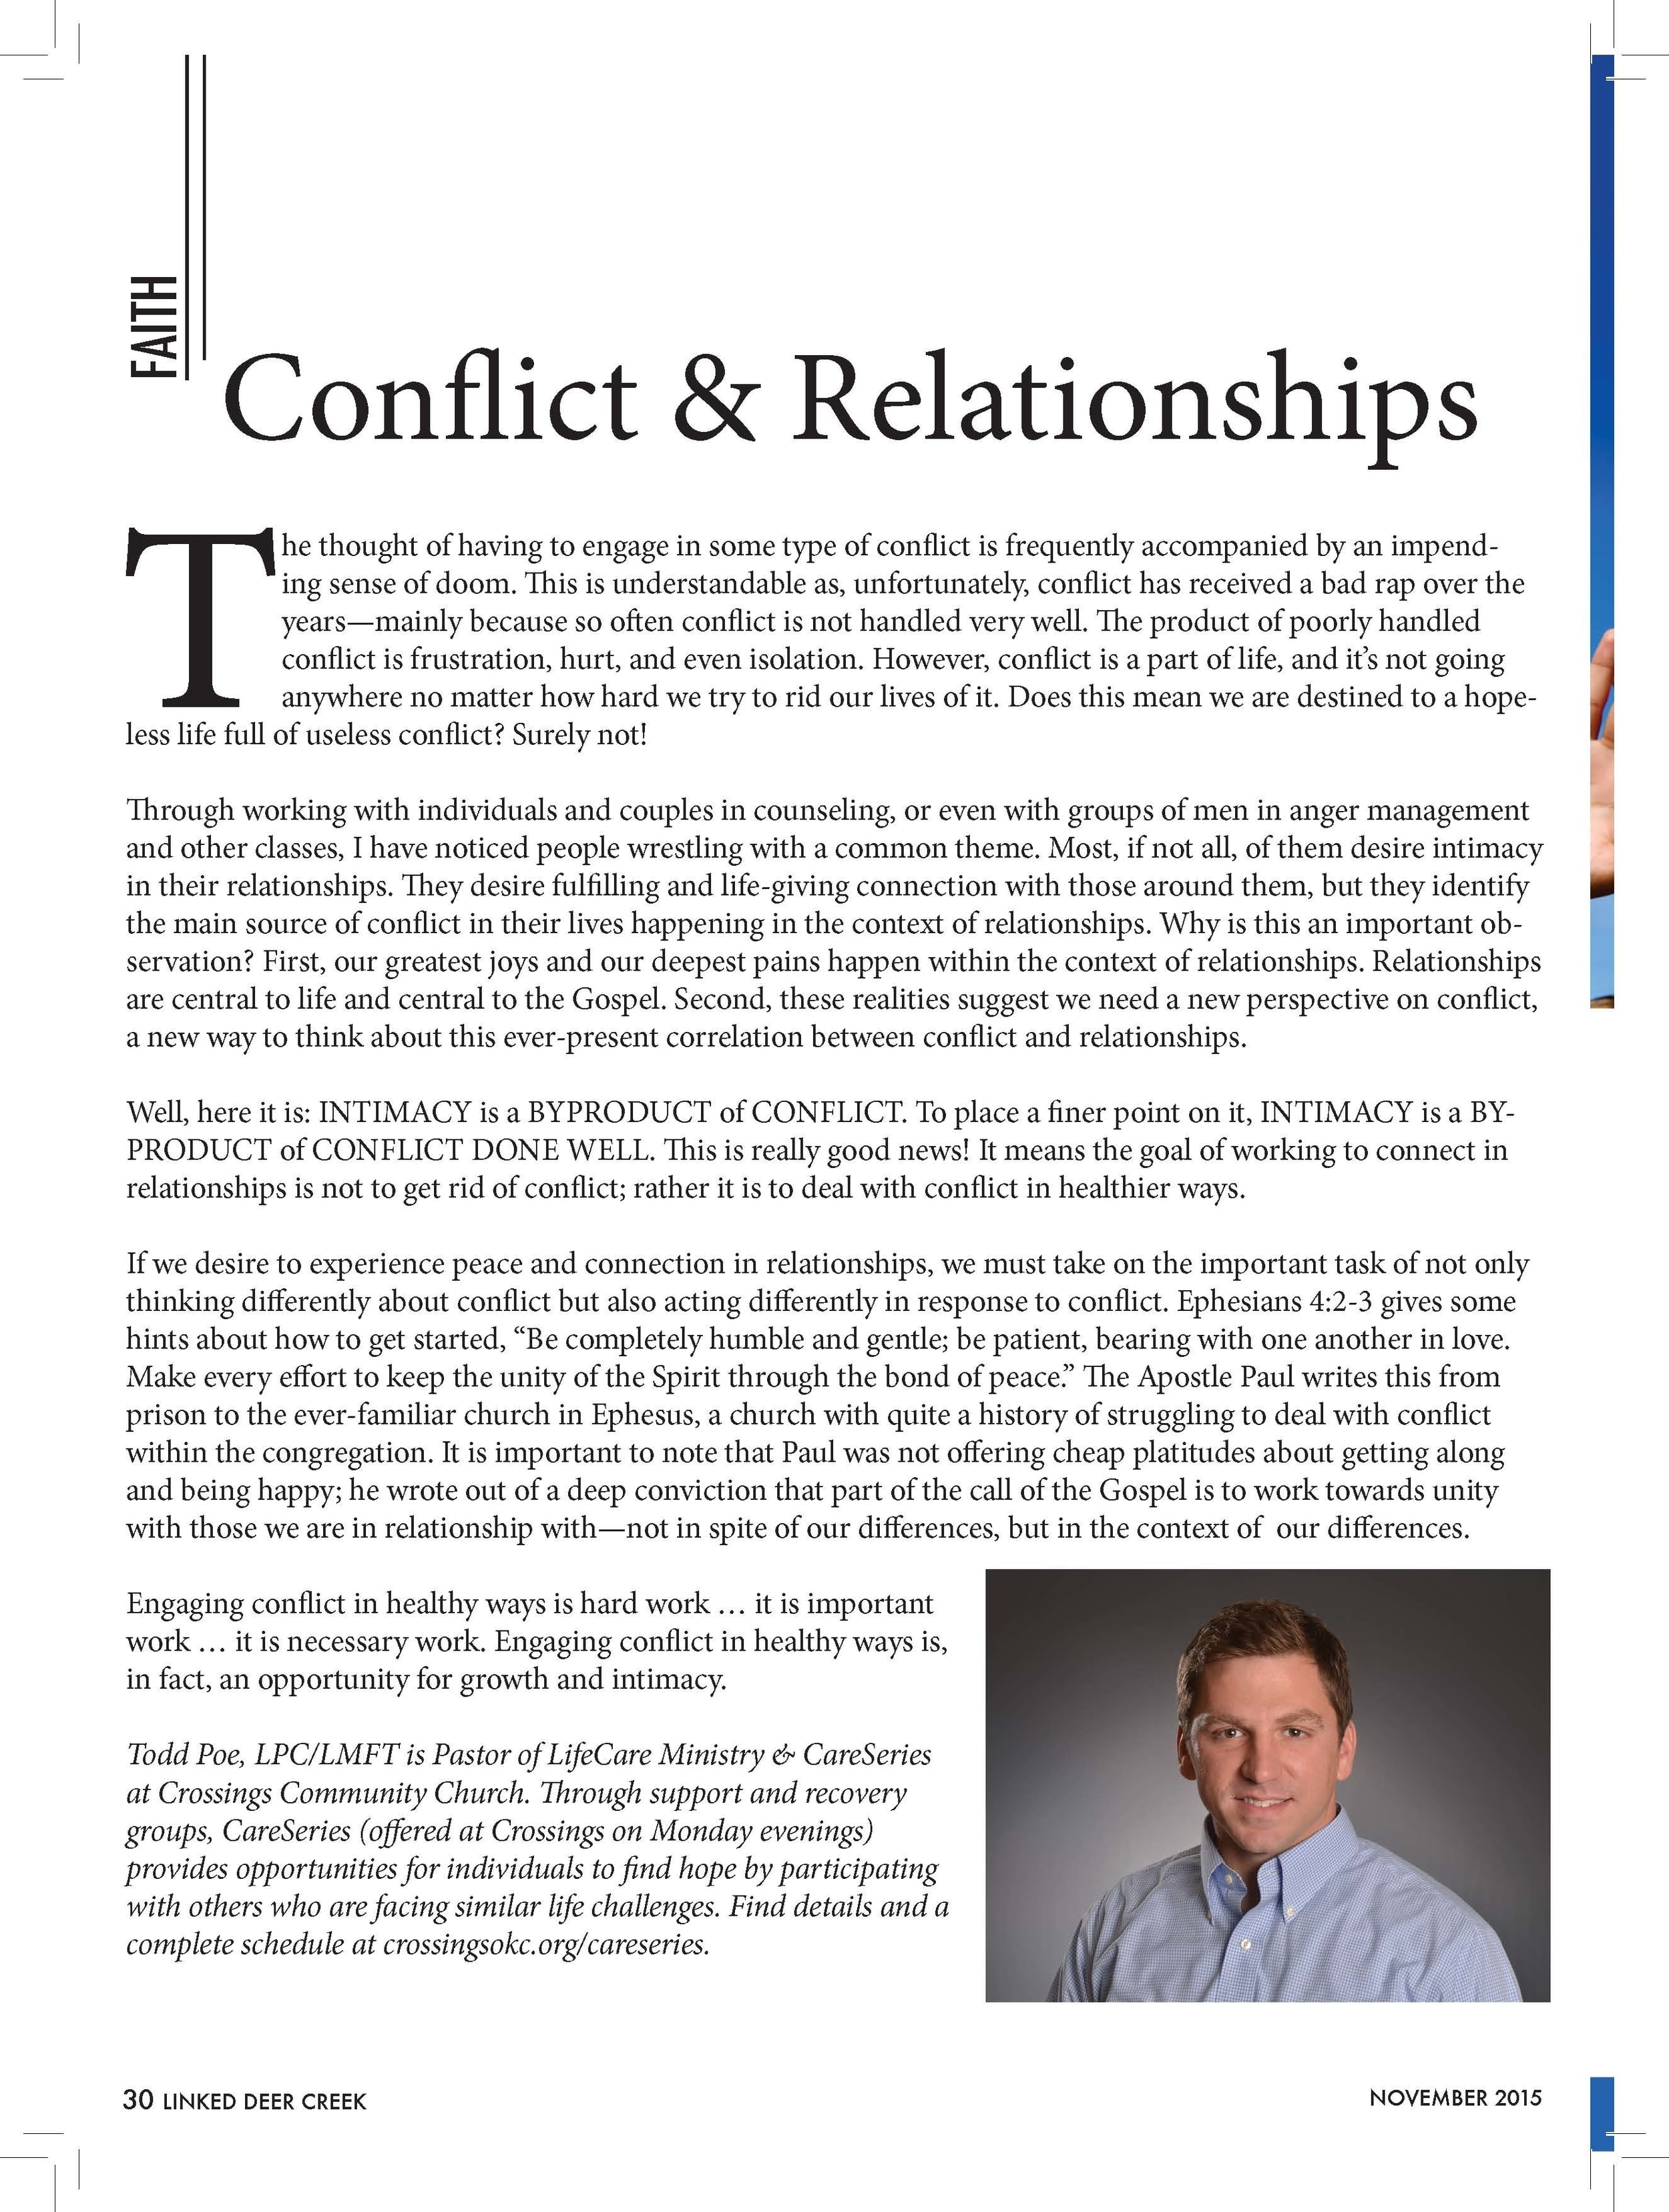 """Conflict & Relationships  The thought of having to engage in some type of conflict is frequently accompanied by an impending  sense of doom. This is understandable as, unfortunately, conflict has received a bad rap over the  years—mainly because so often conflict is not handled very well. The product of poorly handled  conflict is frustration, hurt, and even isolation. However, conflict is a part of life, and it's not going  anywhere no matter how hard we try to rid our lives of it. Does this mean we are destined to a hopeless  life full of useless conflict? Surely not!  Through working with individuals and couples in counseling, or even with groups of men in anger management  and other classes, I have noticed people wrestling with a common theme. Most, if not all, of them desire intimacy  in their relationships. They desire fulfilling and life-giving connection with those around them, but they identify  the main source of conflict in their lives happening in the context of relationships. Why is this an important observation?  First, our greatest joys and our deepest pains happen within the context of relationships. Relationships  are central to life and central to the Gospel. Second, these realities suggest we need a new perspective on conflict,  a new way to think about this ever-present correlation between conflict and relationships.  Well, here it is: INTIMACY is a BYPRODUCT of CONFLICT. To place a finer point on it, INTIMACY is a BYPRODUCT  of CONFLICT DONE WELL. This is really good news! It means the goal of working to connect in  relationships is not to get rid of conflict; rather it is to deal with conflict in healthier ways.  If we desire to experience peace and connection in relationships, we must take on the important task of not only  thinking differently about conflict but also acting differently in response to conflict. Ephesians 4:2-3 gives some  hints about how to get started, """"Be completely humble and gentle; be patient, bearing with one another in """